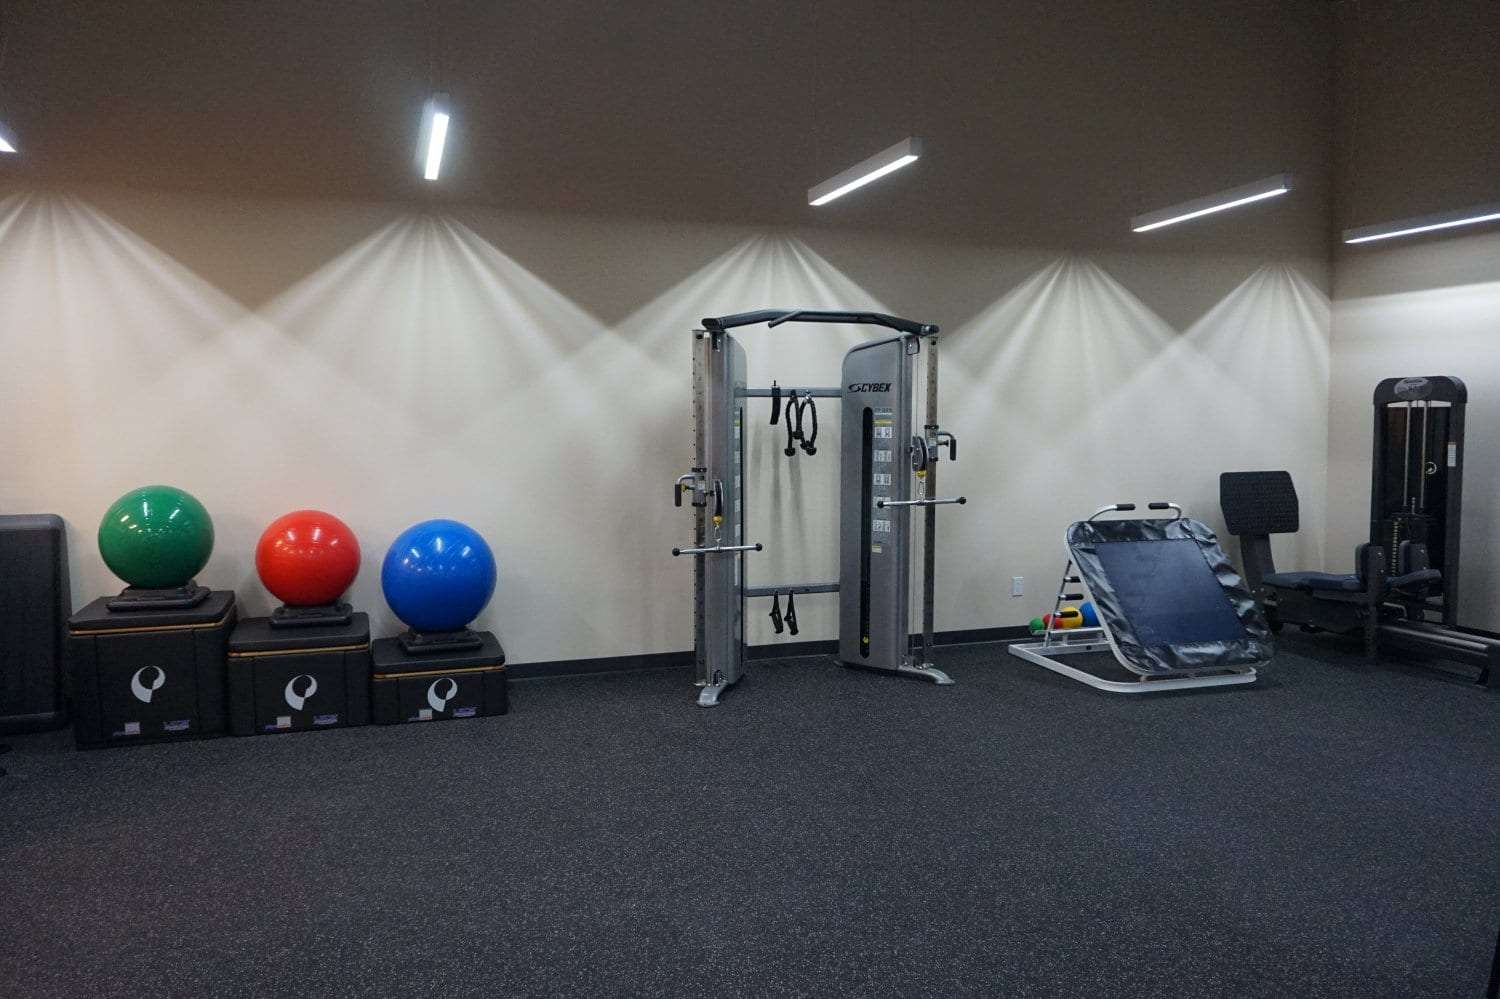 Here is a great shot showcasing some of the equipment used at our physical therapy clinic in West Islip New York.